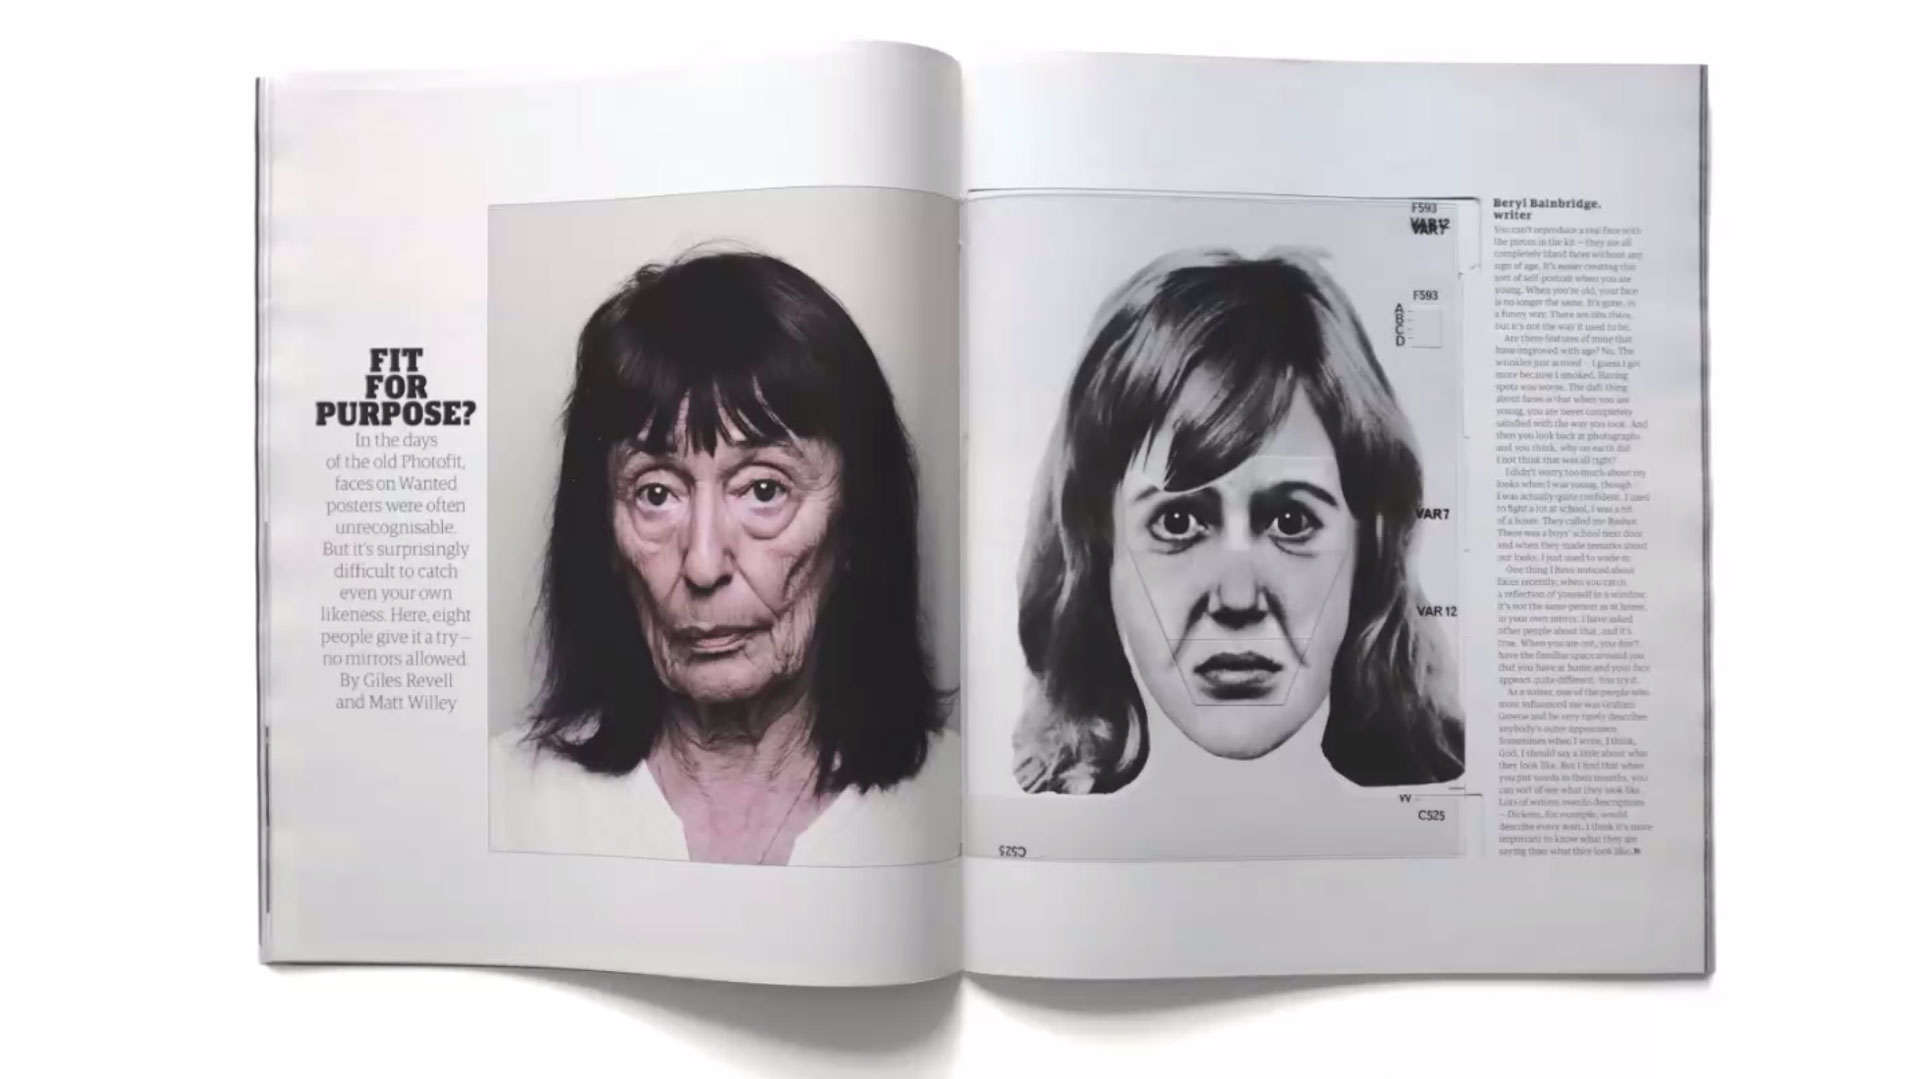 photo of woman with dark hair and a police sketch magazine spread